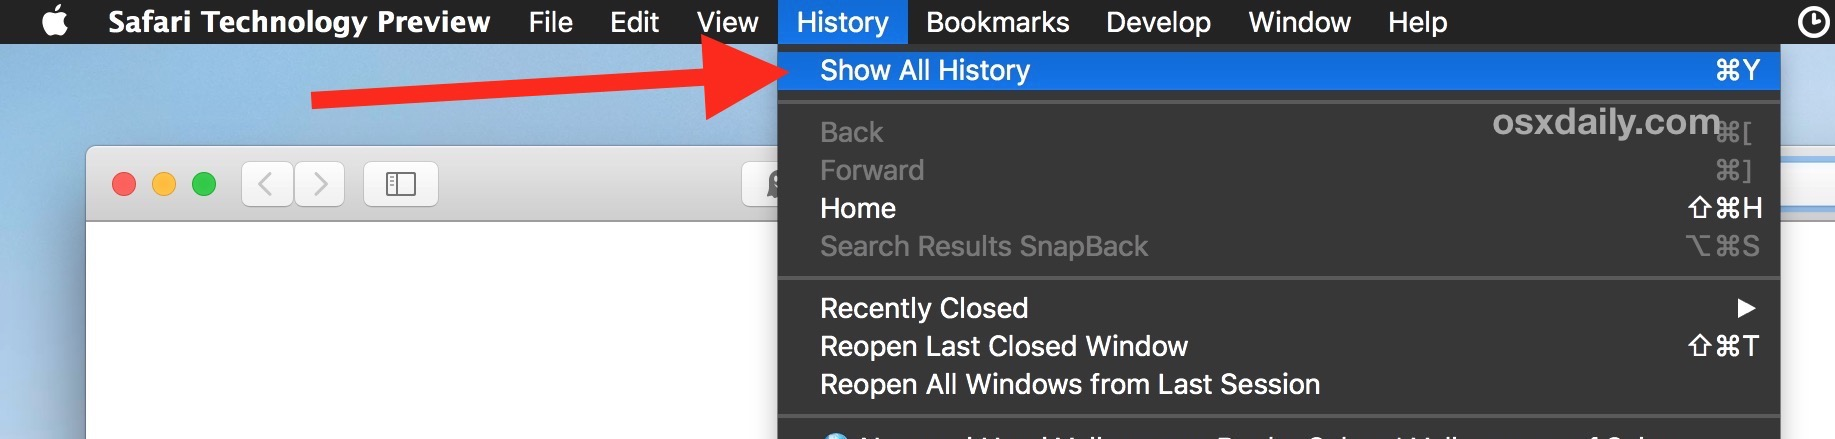 How to show all browsing history in Safari on Mac